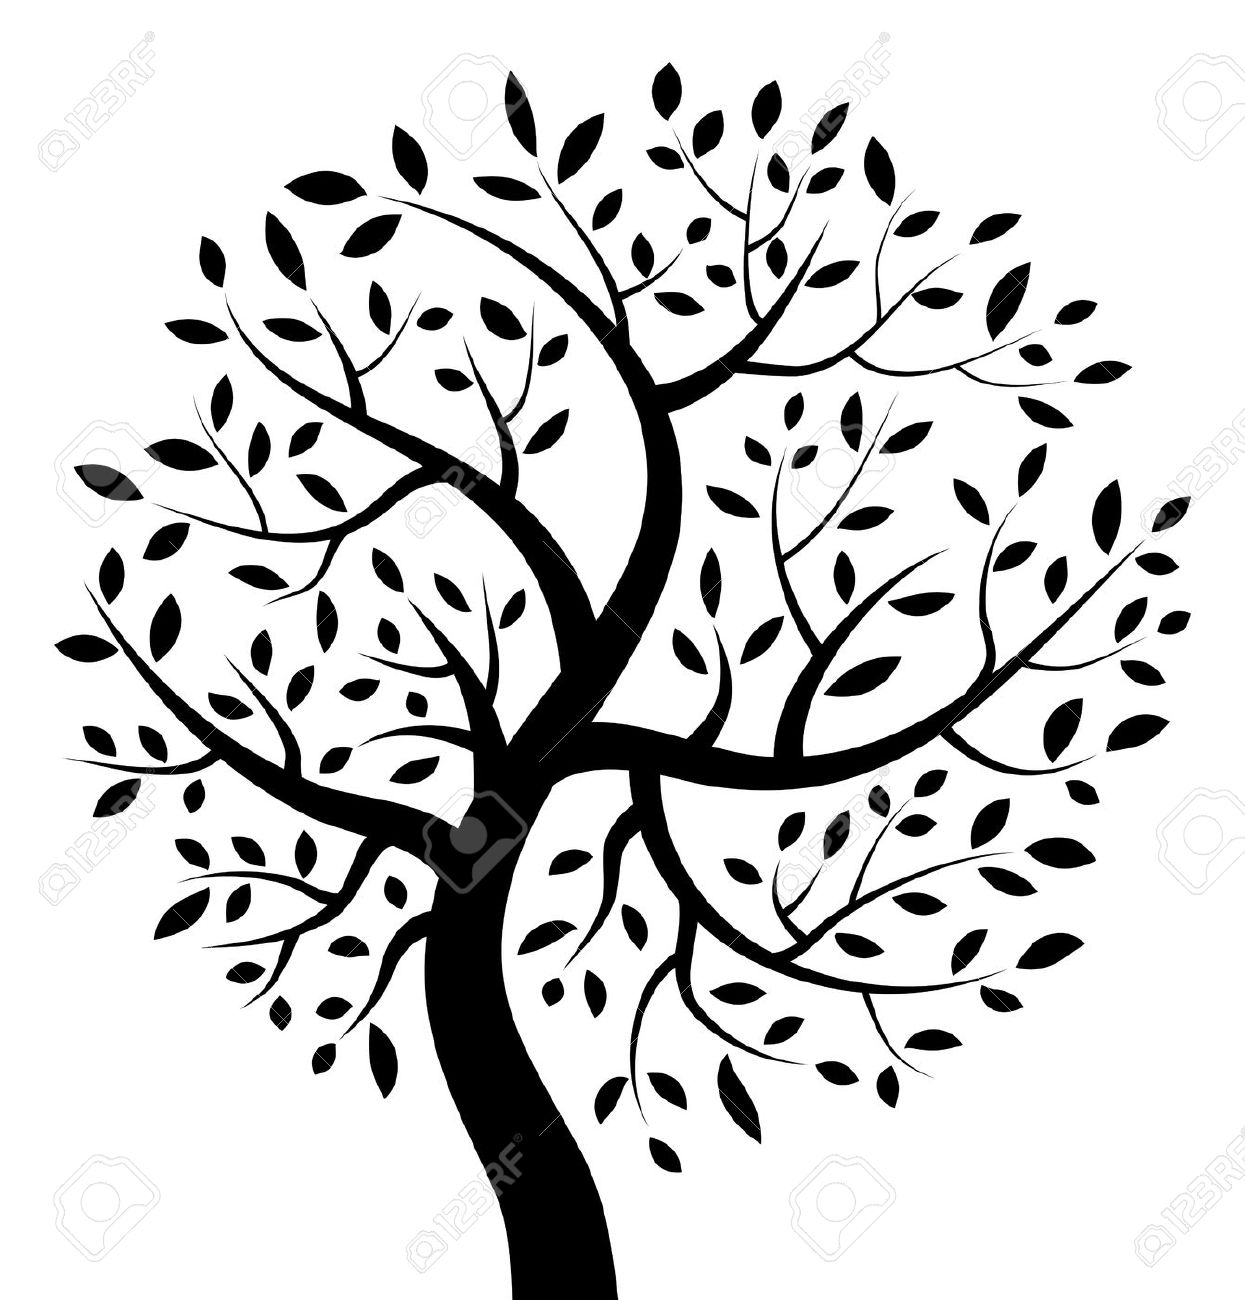 1245x1300 Family Tree Images, Stock Pictures, Royalty Free Family Tree